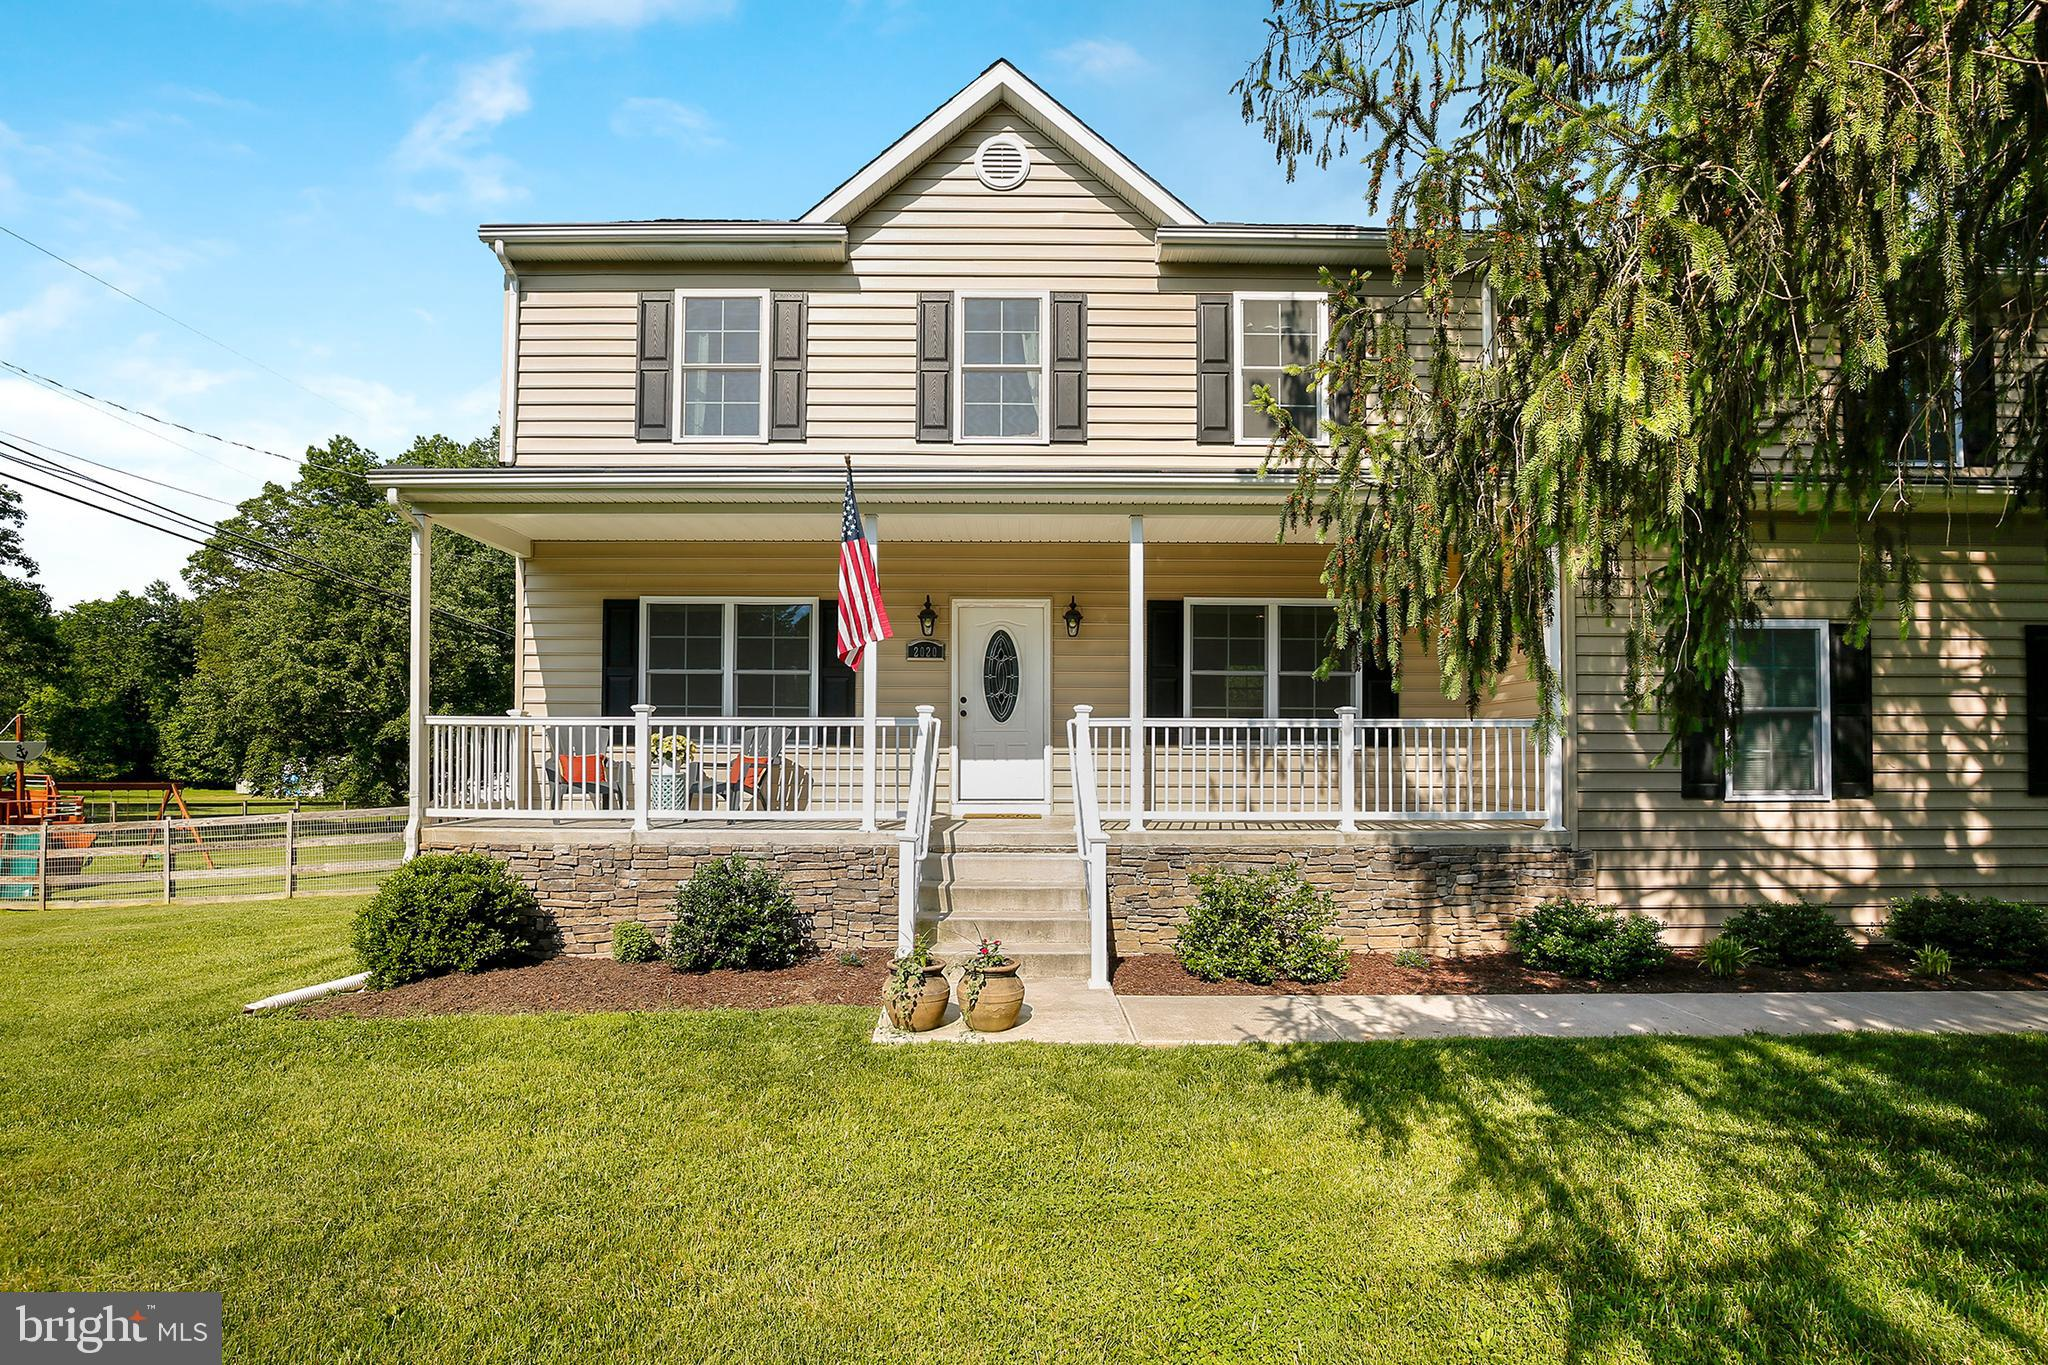 2020 MILLERS MILL ROAD, COOKSVILLE, MD 21723